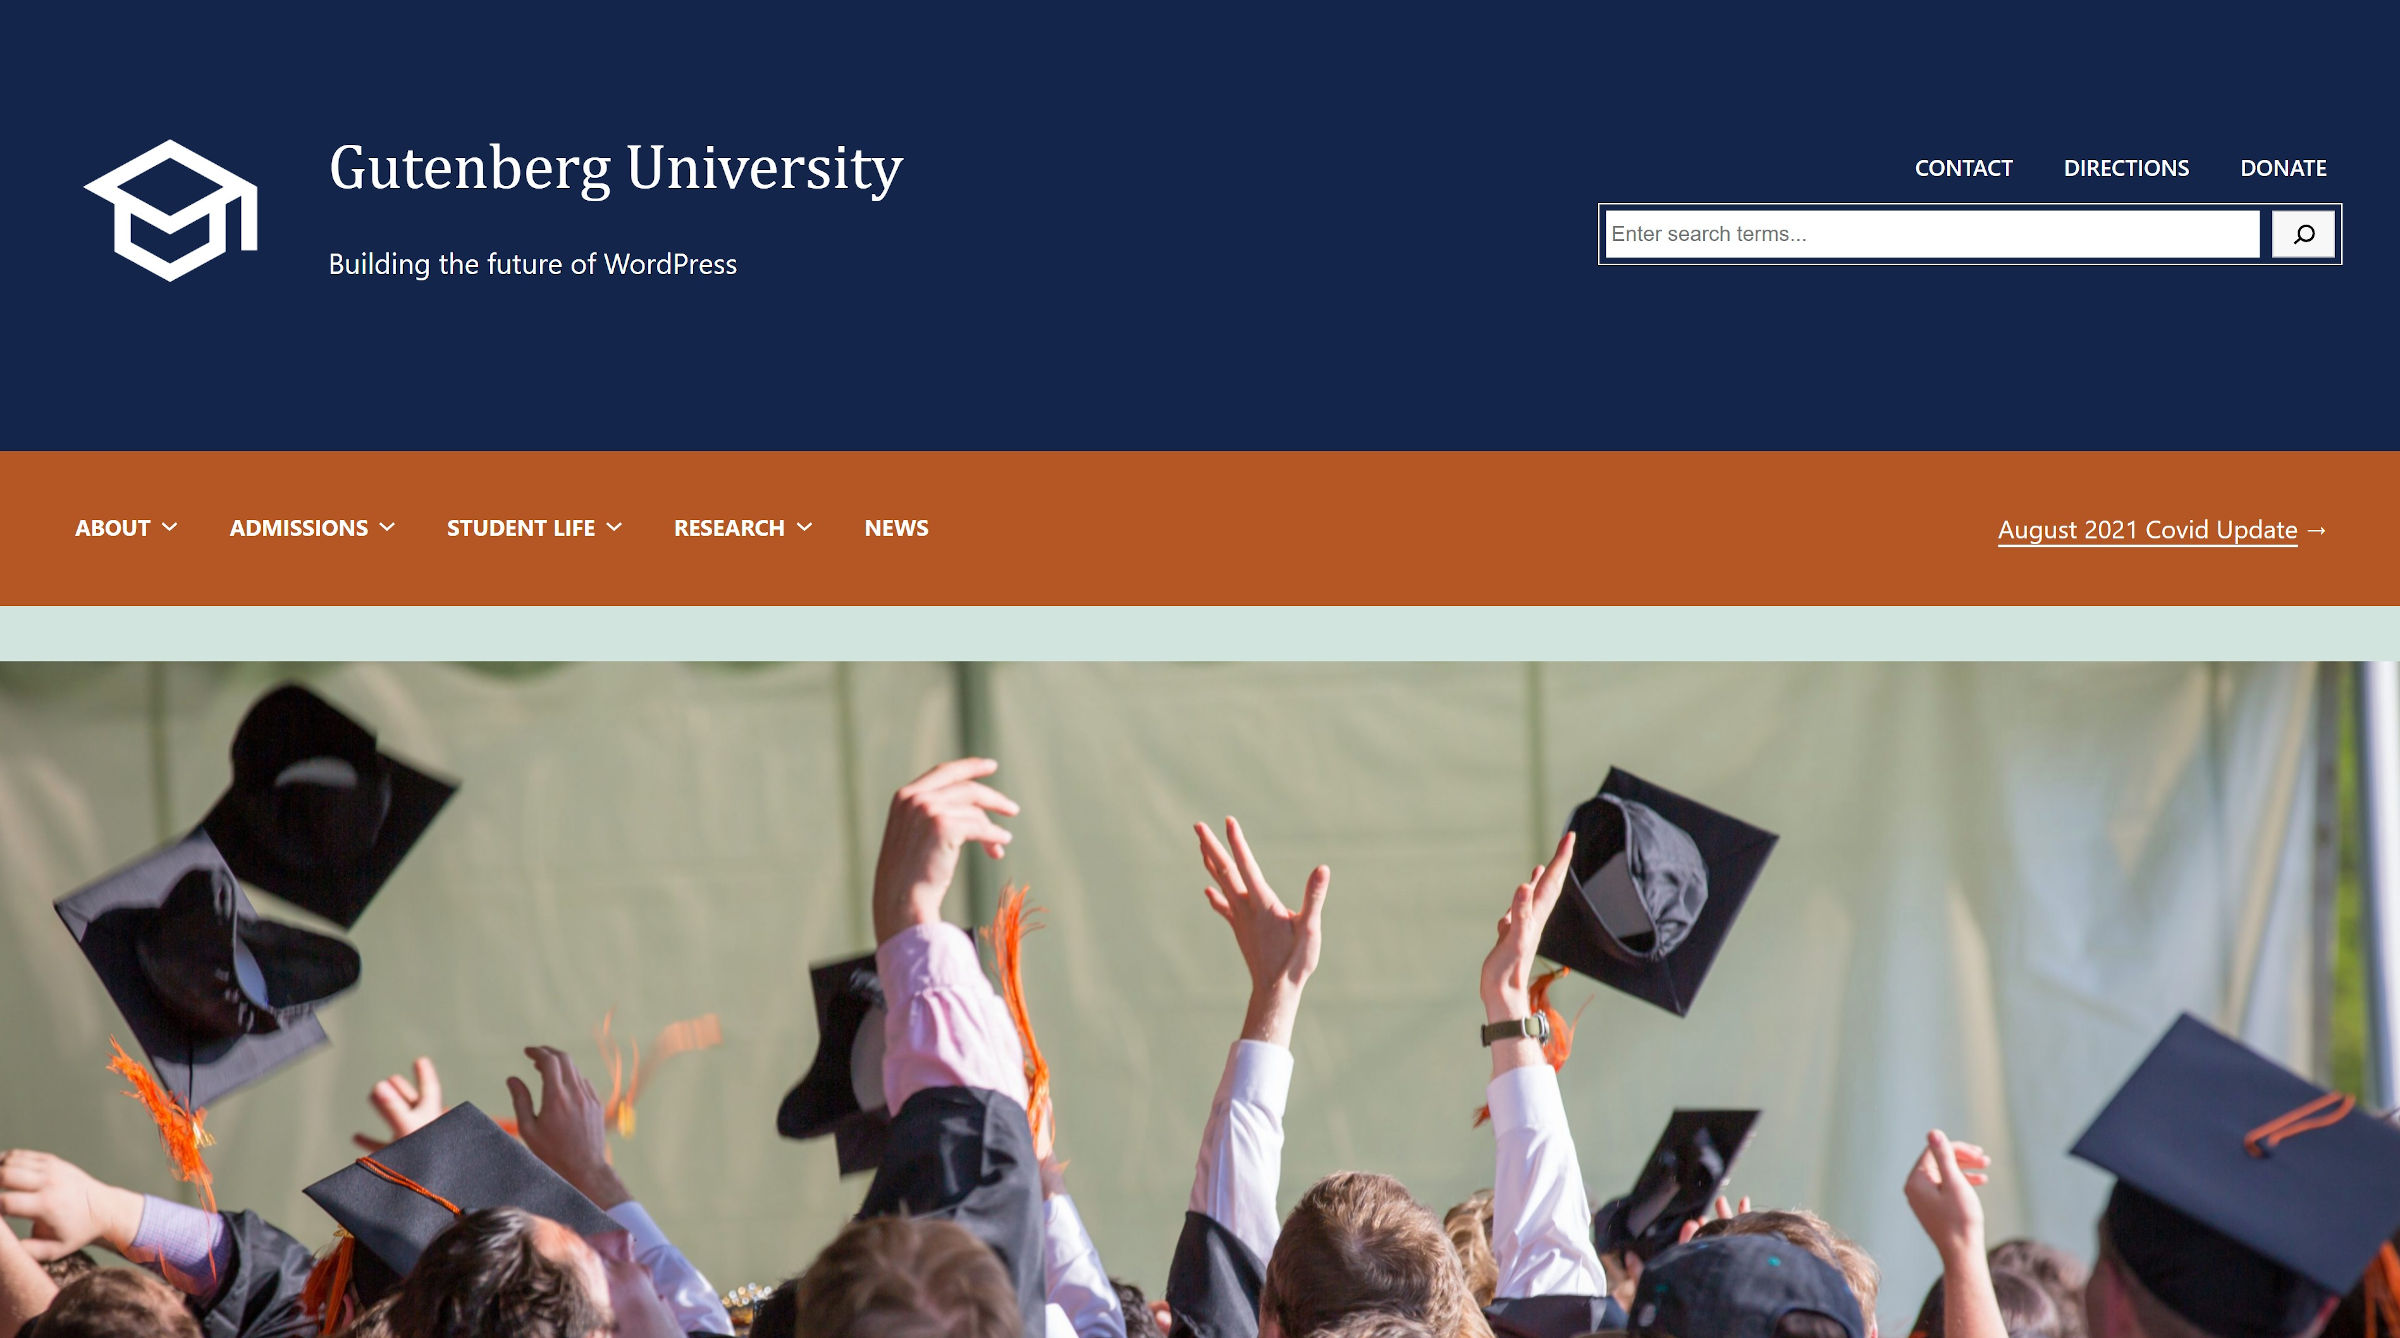 Fictional university website header with logo, title, navigation, search, and image.